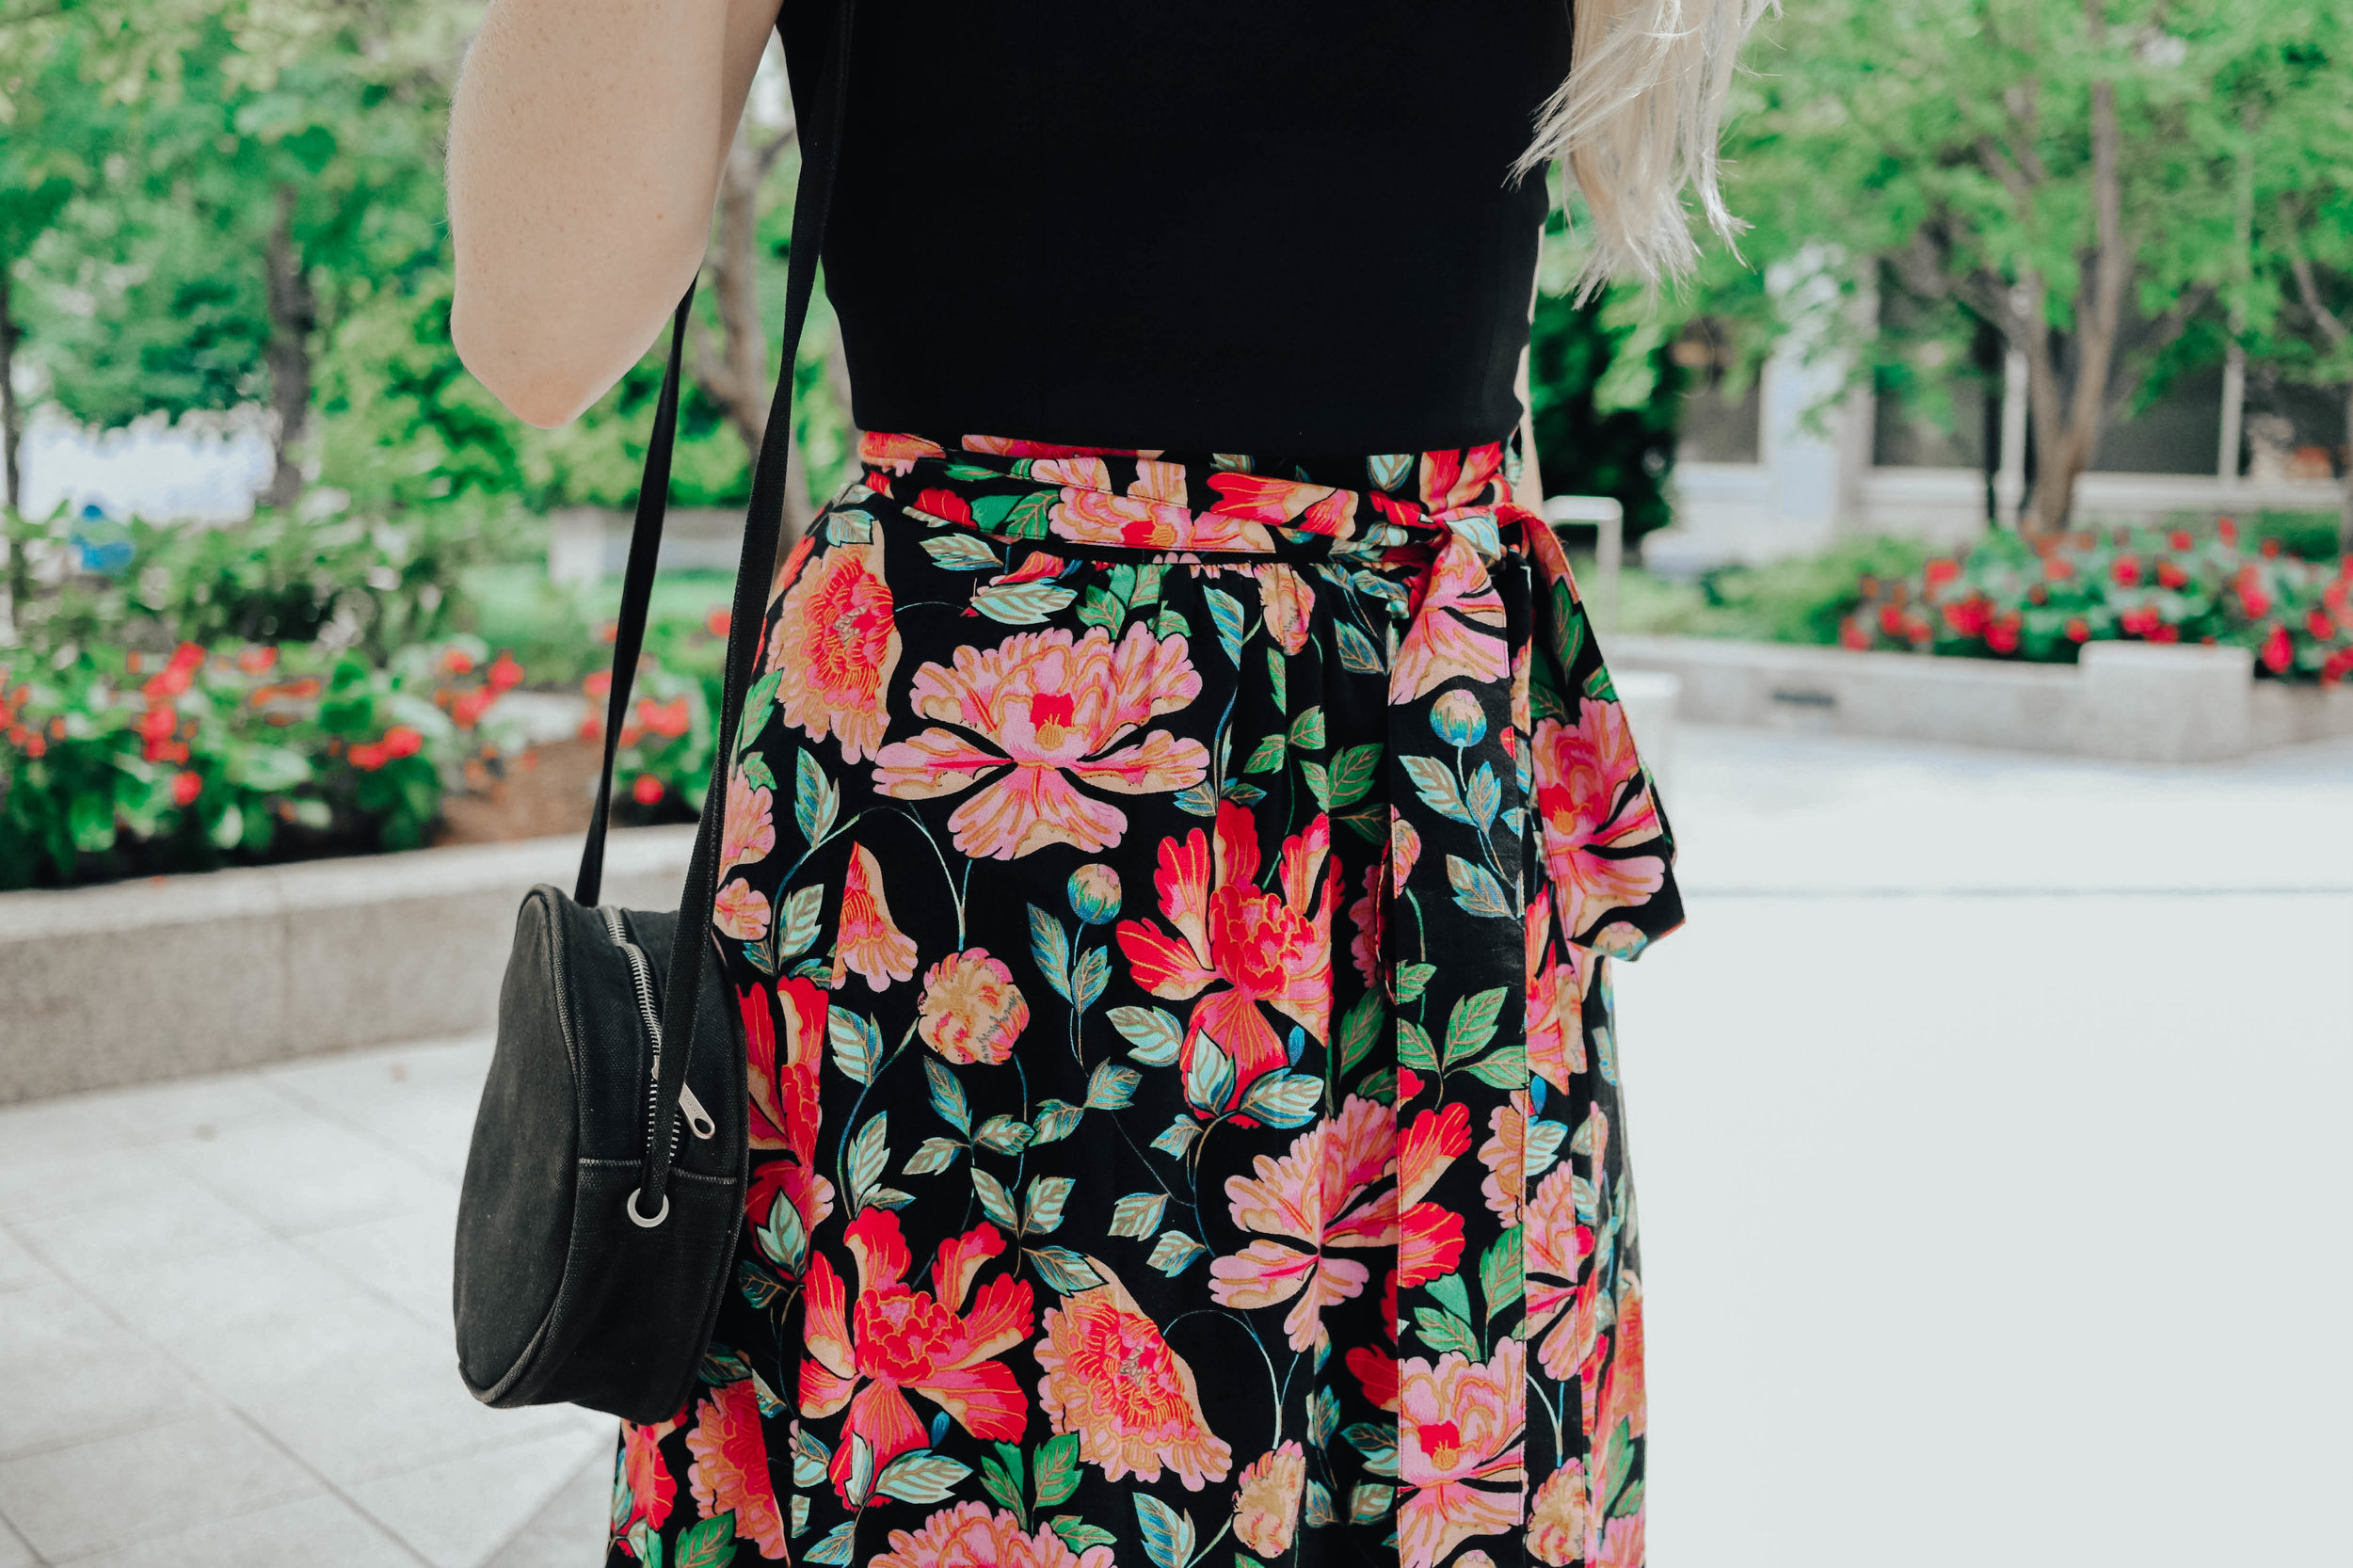 & Other Stories Floral Skirt | @maevestier